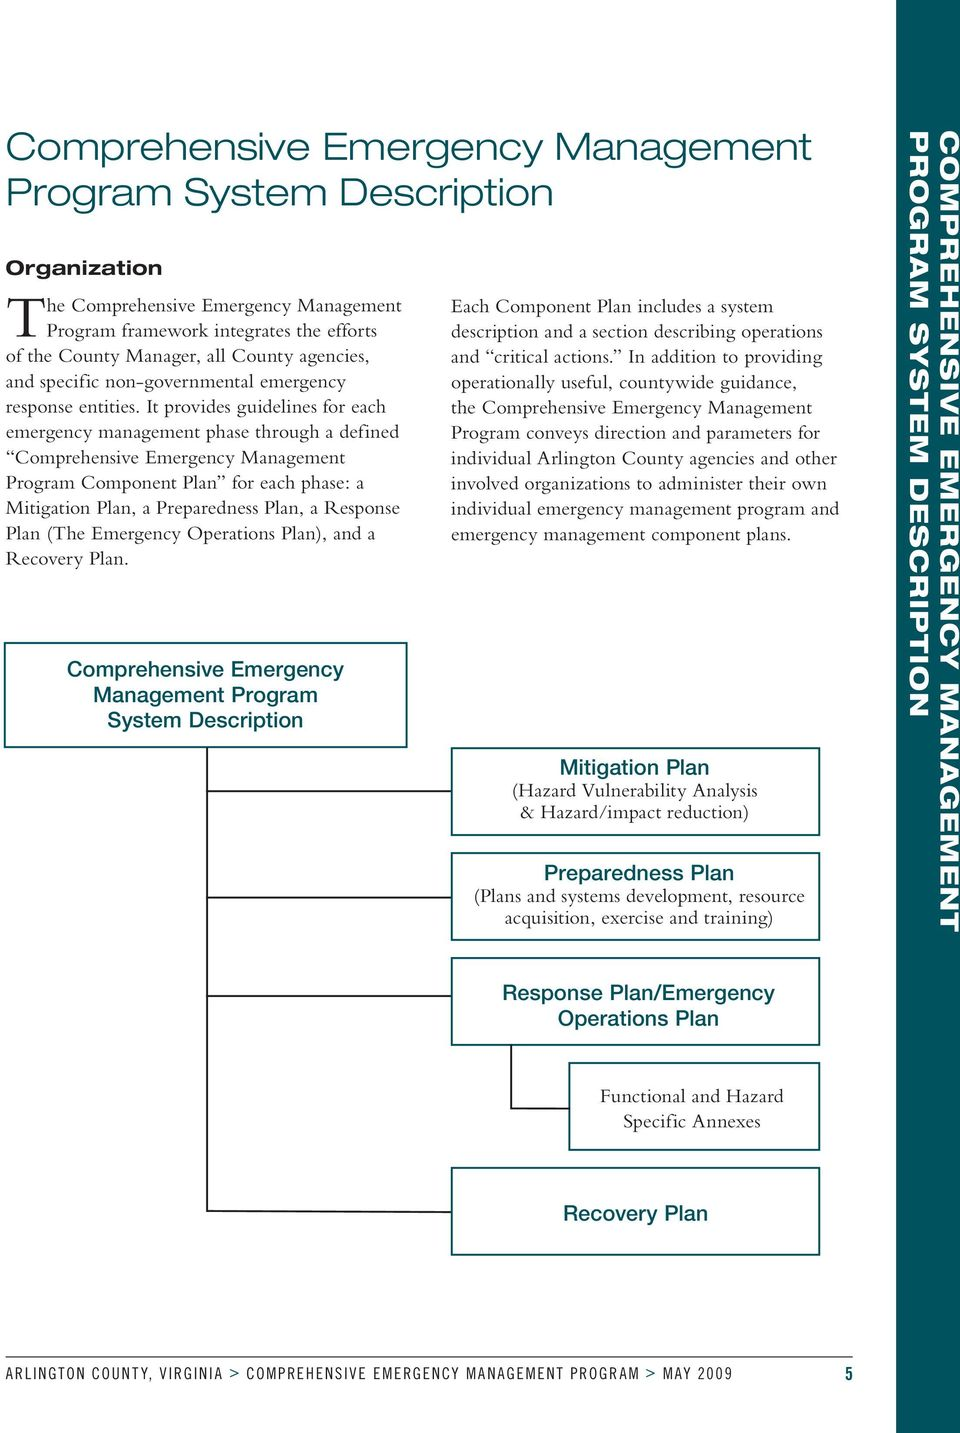 It provides guidelines for each emergency management phase through a defined Comprehensive Emergency Management Program Component Plan for each phase: a Mitigation Plan, a Preparedness Plan, a